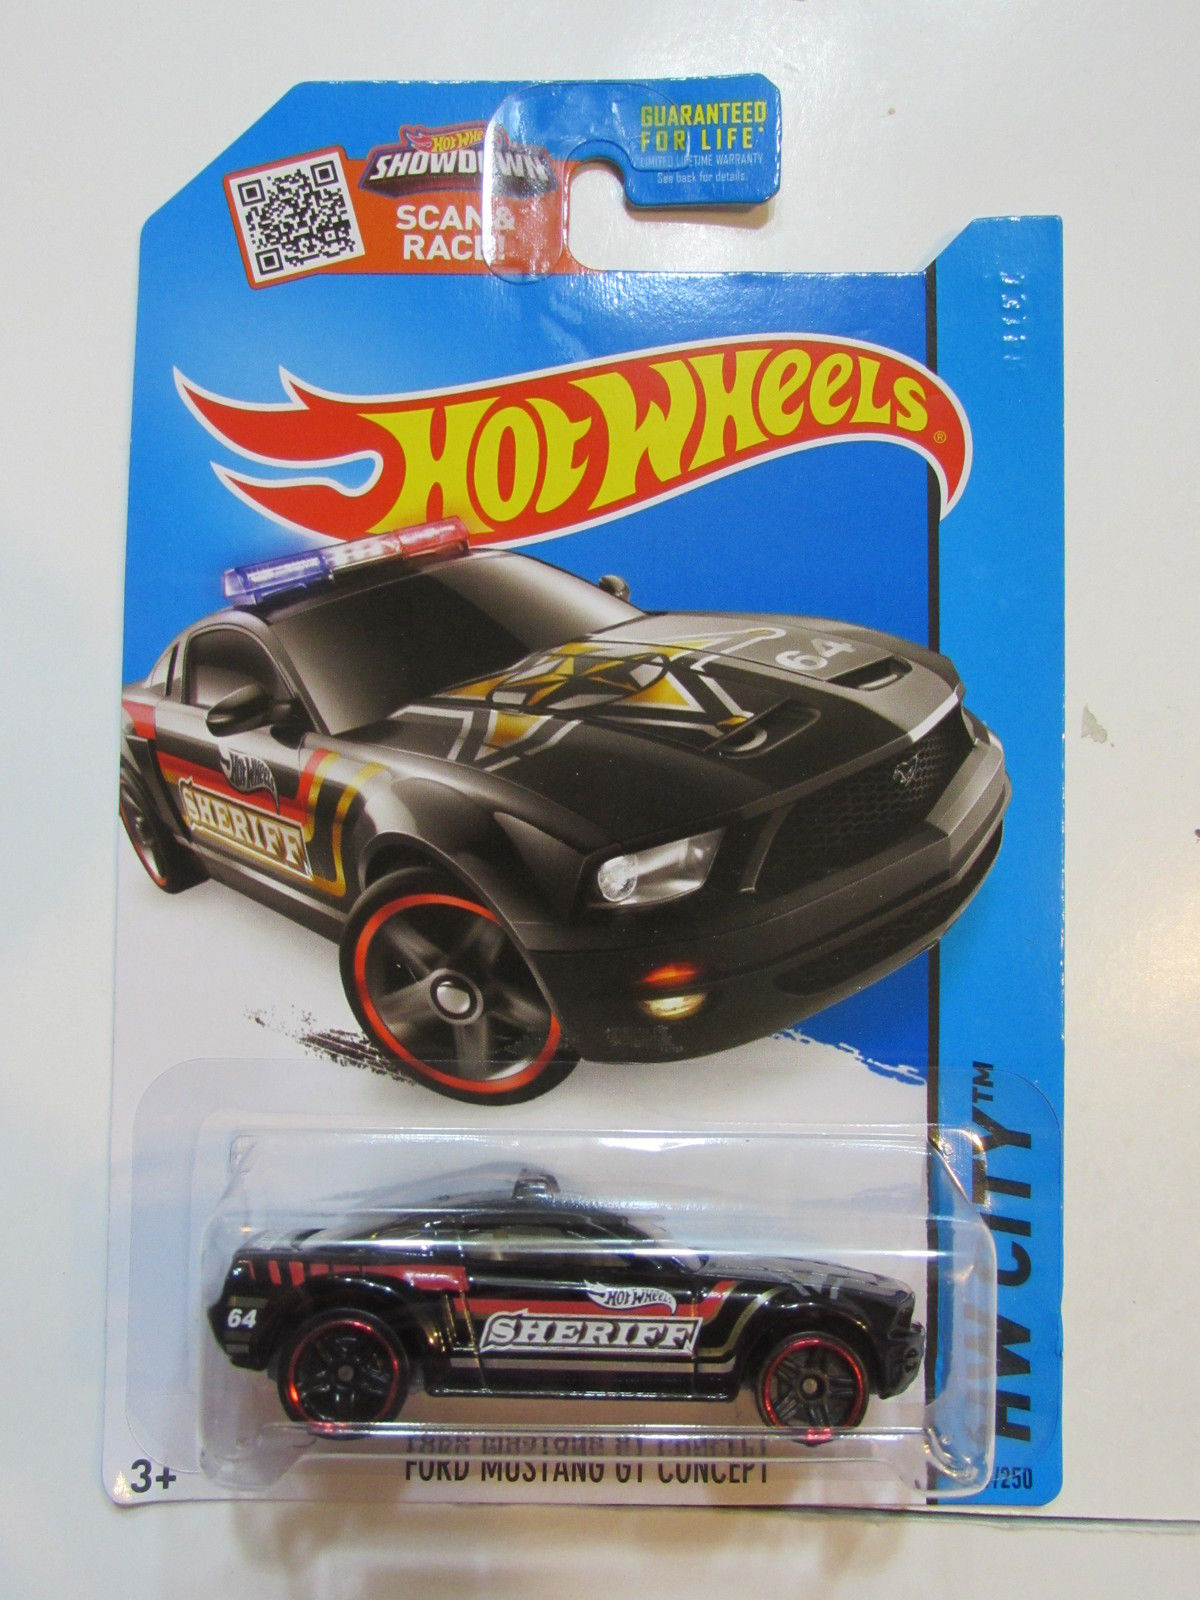 HOT WHEELS 2015 HW CITY - HW RESCUE FORD MUSTANG GT CONCEPT BLACK